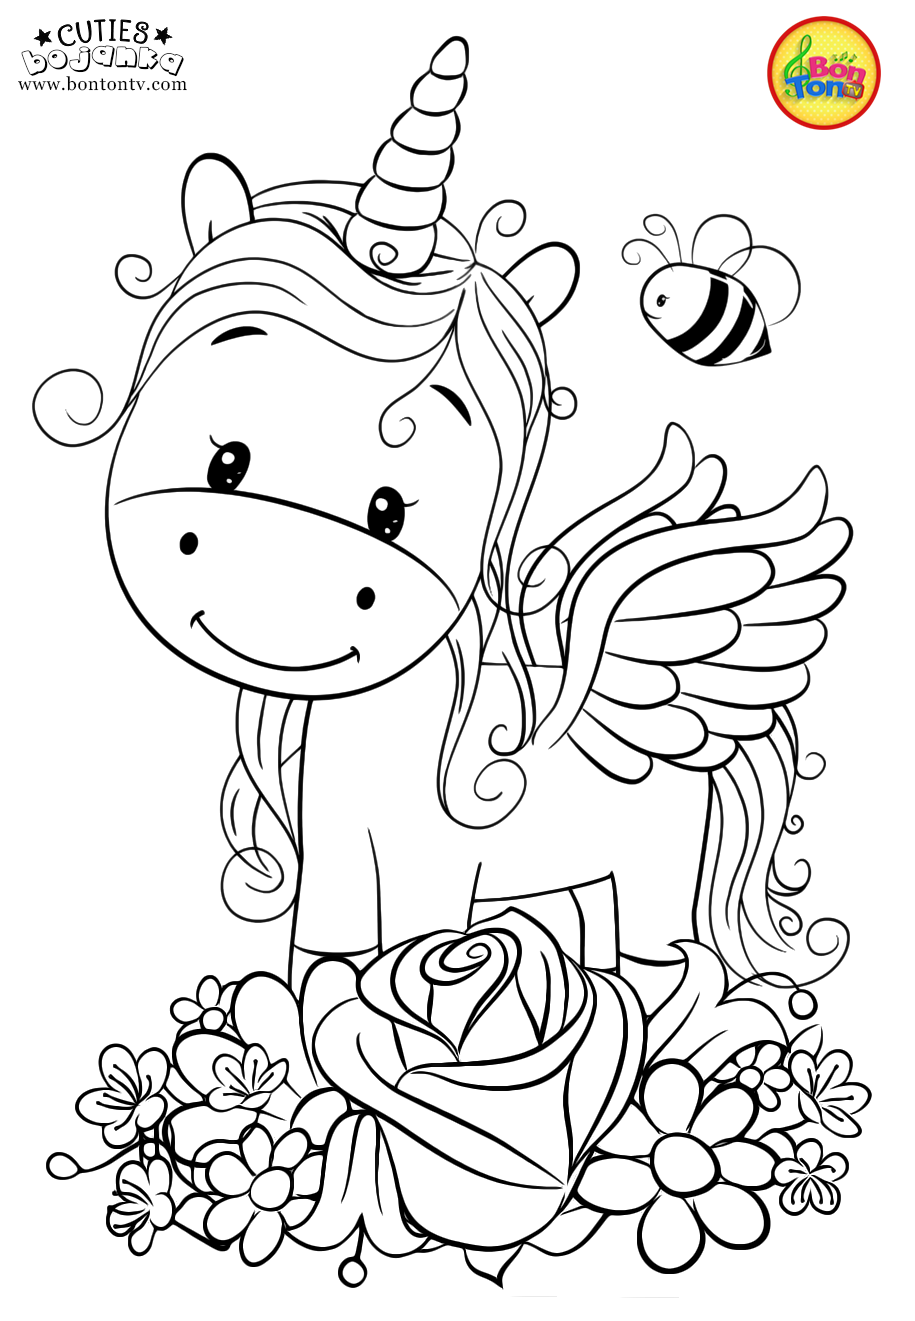 37++ Animal unicorn cute coloring pages for kids ideas in 2021